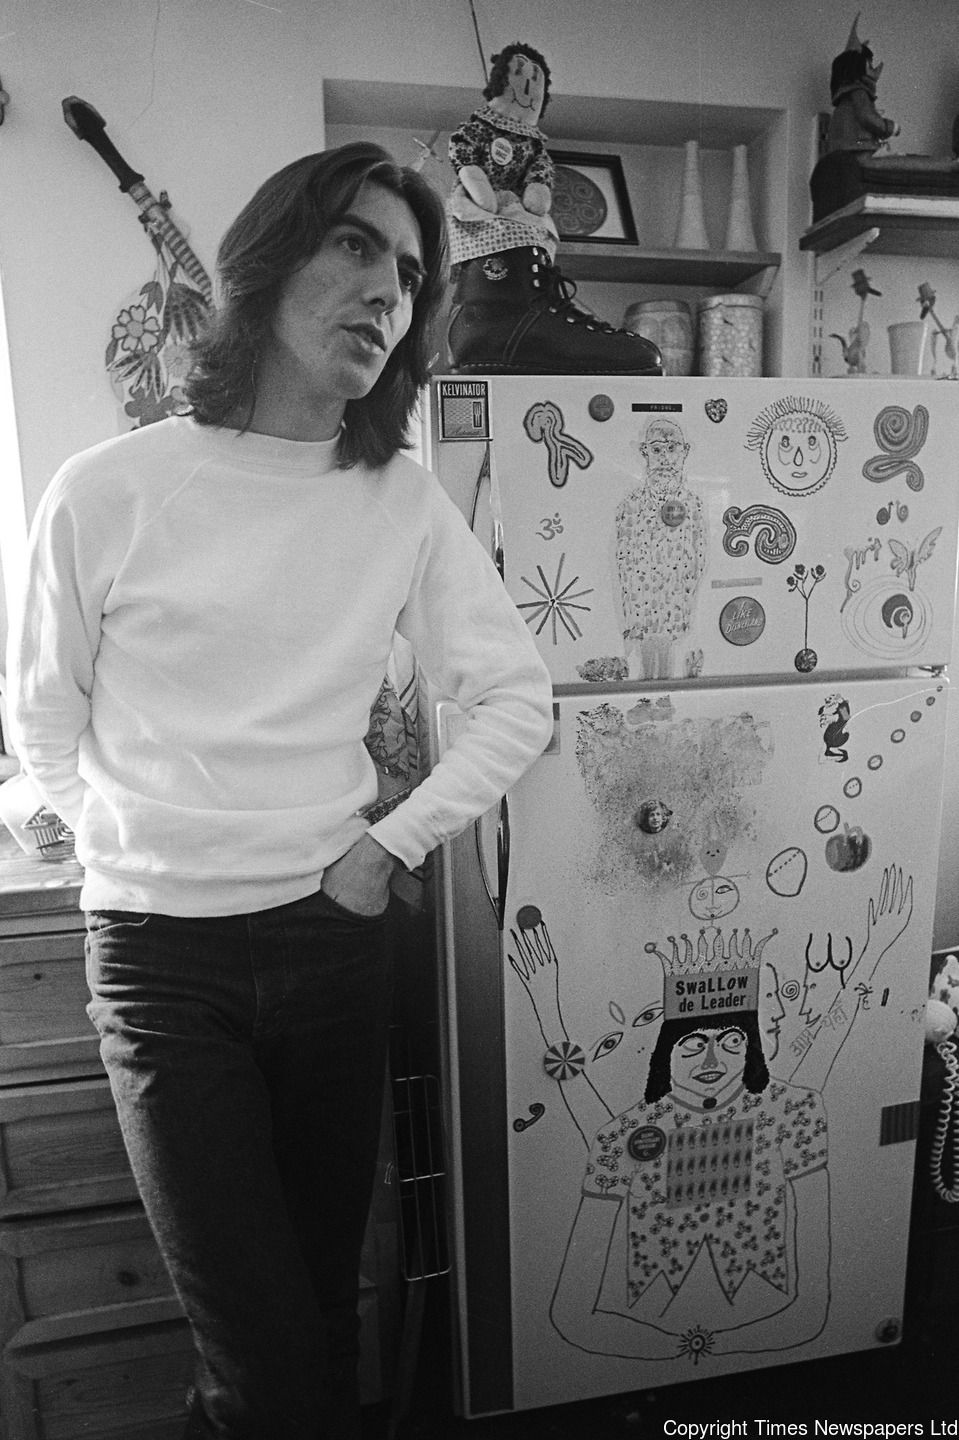 April 1969 Popular Mechanics Magazine Vacation Home Plans: George Harrison Pictured At His Home In Esher, Surrey. 6th